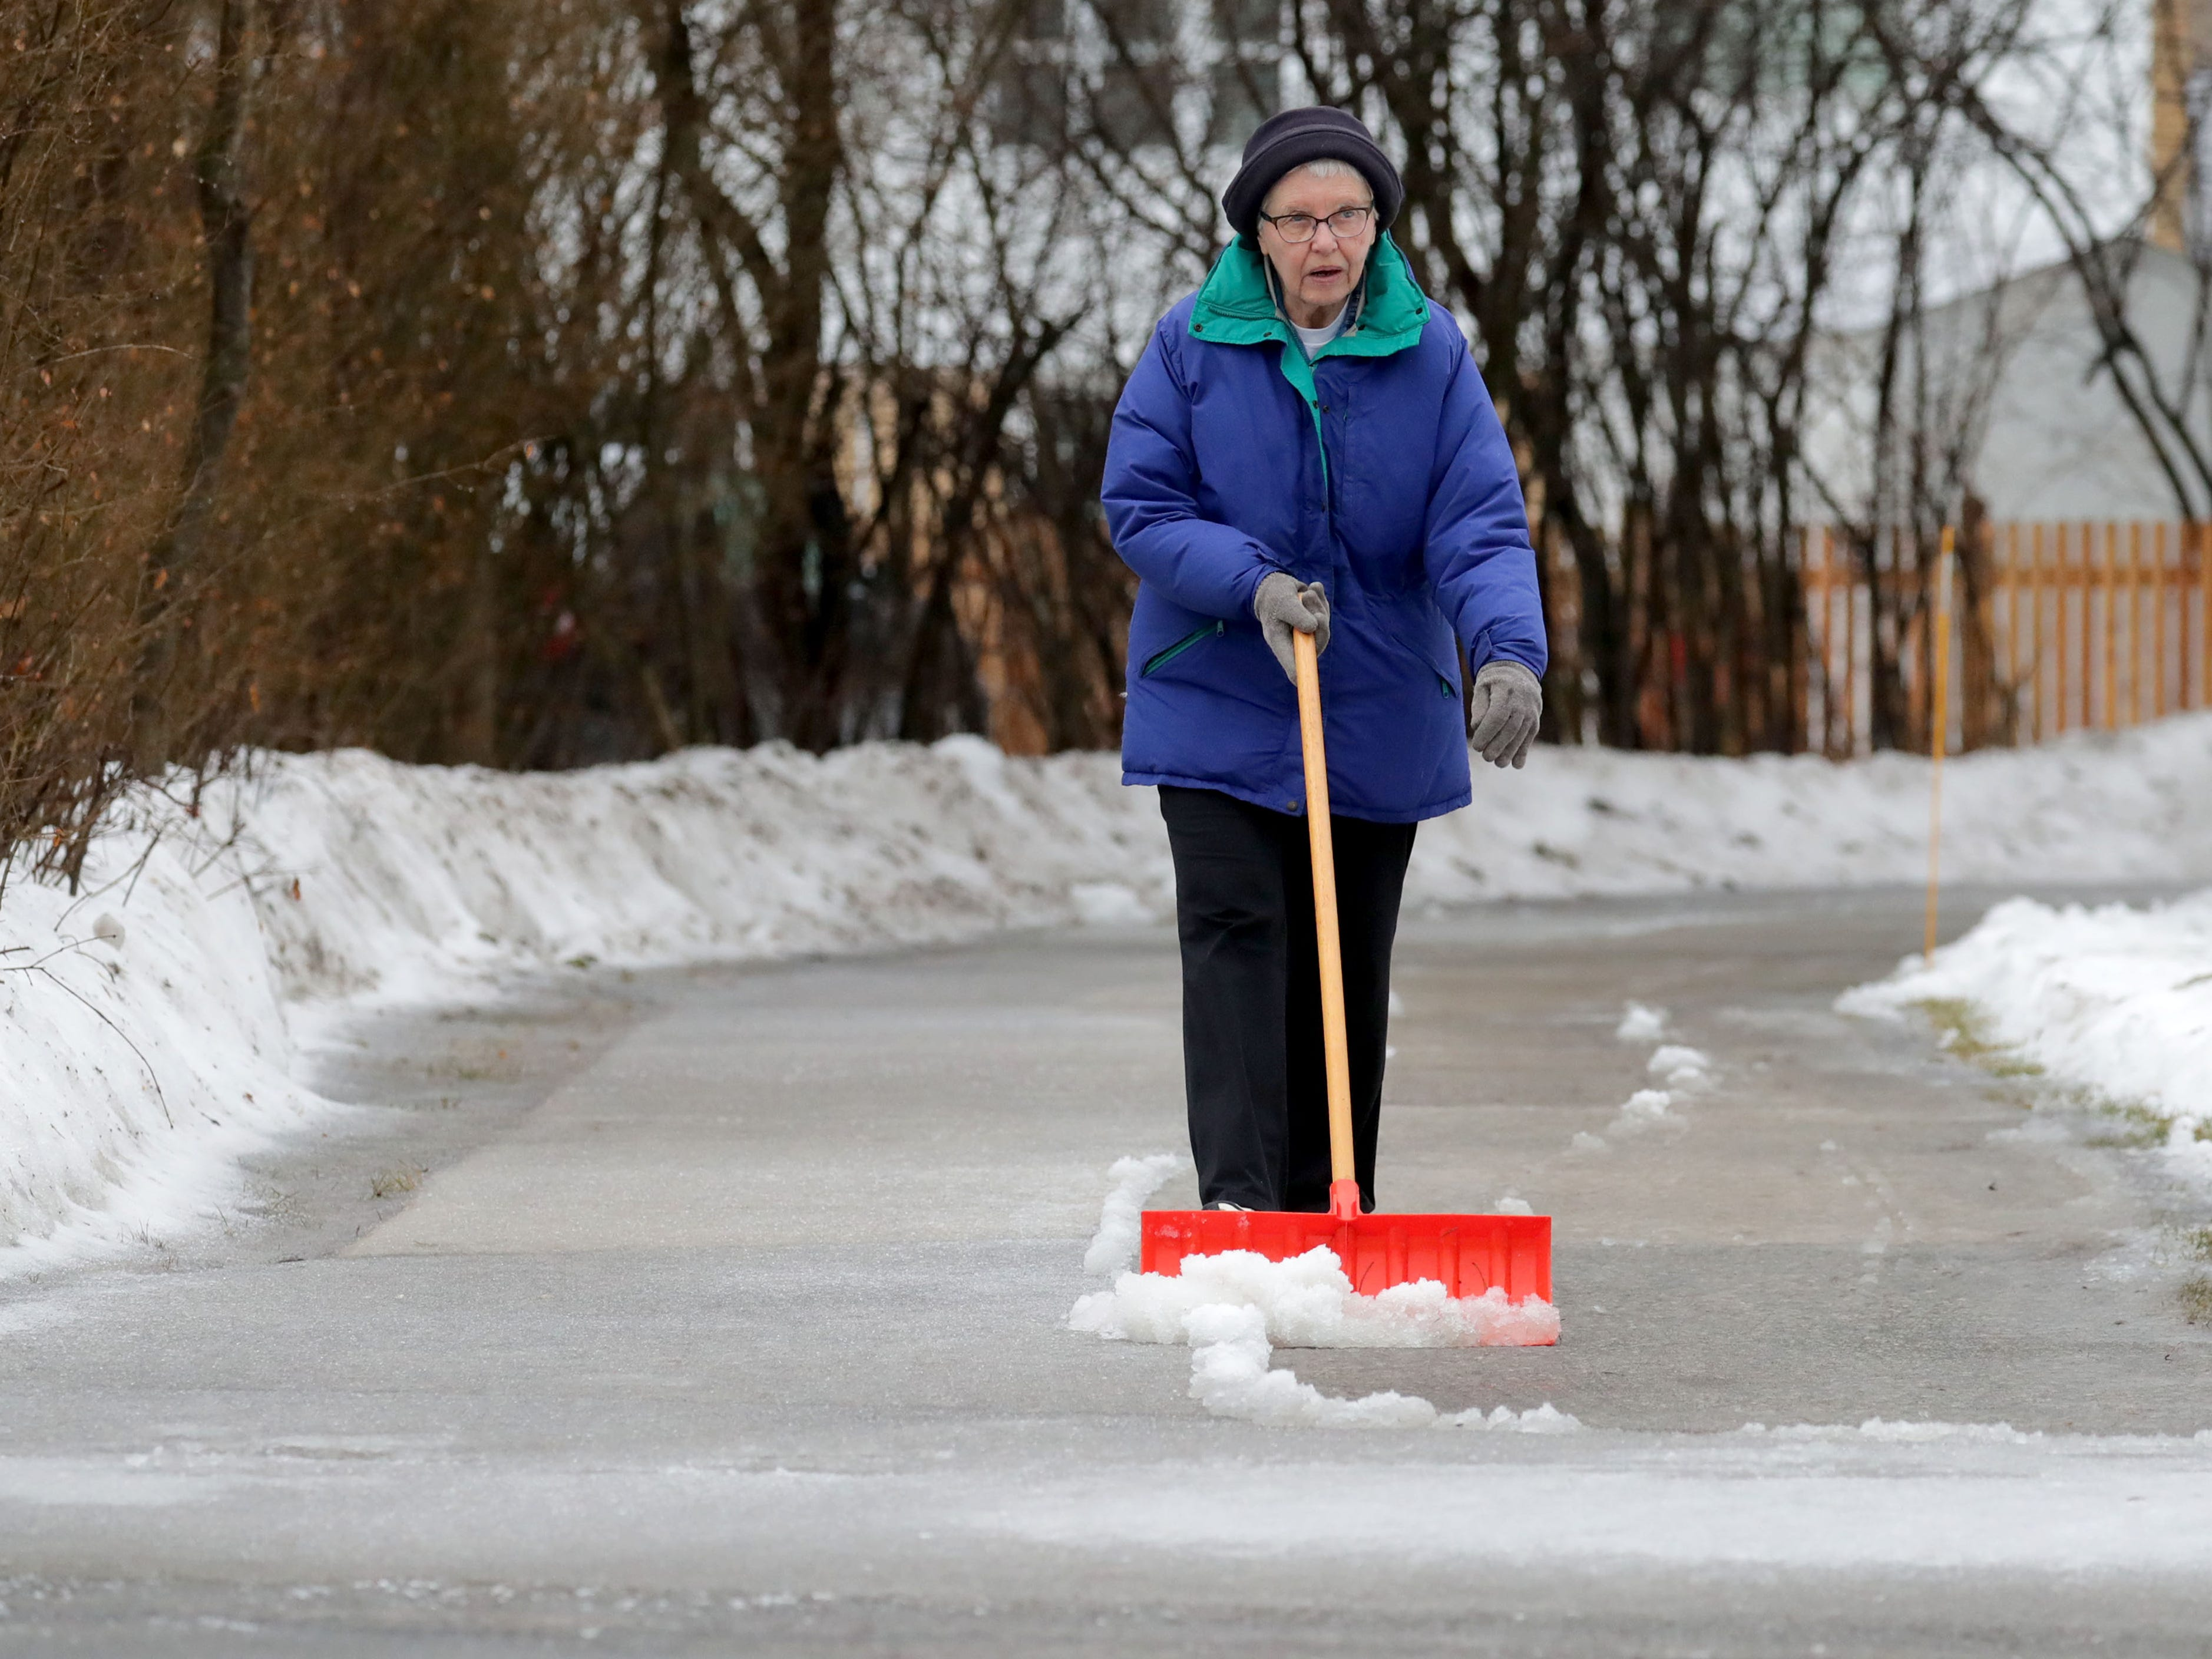 A woman, who wished to remain unidentified, shovels the ice on her drive on Lake Drive in Fox Point on Wednesday, Feb. 6, 2019. While freezing rain made roads and sidewalks a slushy mess Wednesday, the Milwaukee metro area is in for another round of icy weather that is expected to make the commutes hazardous Wednesday night and Thursday morning. A winter weather advisory for Ozaukee and Washington counties as well as the Madison area has been issued for 6 p.m. Wednesday to 6 p.m Thursday. Total snow accumulations of up to 2 inches and ice accumulations of two-tenths to three-tenths of an inch are expected.